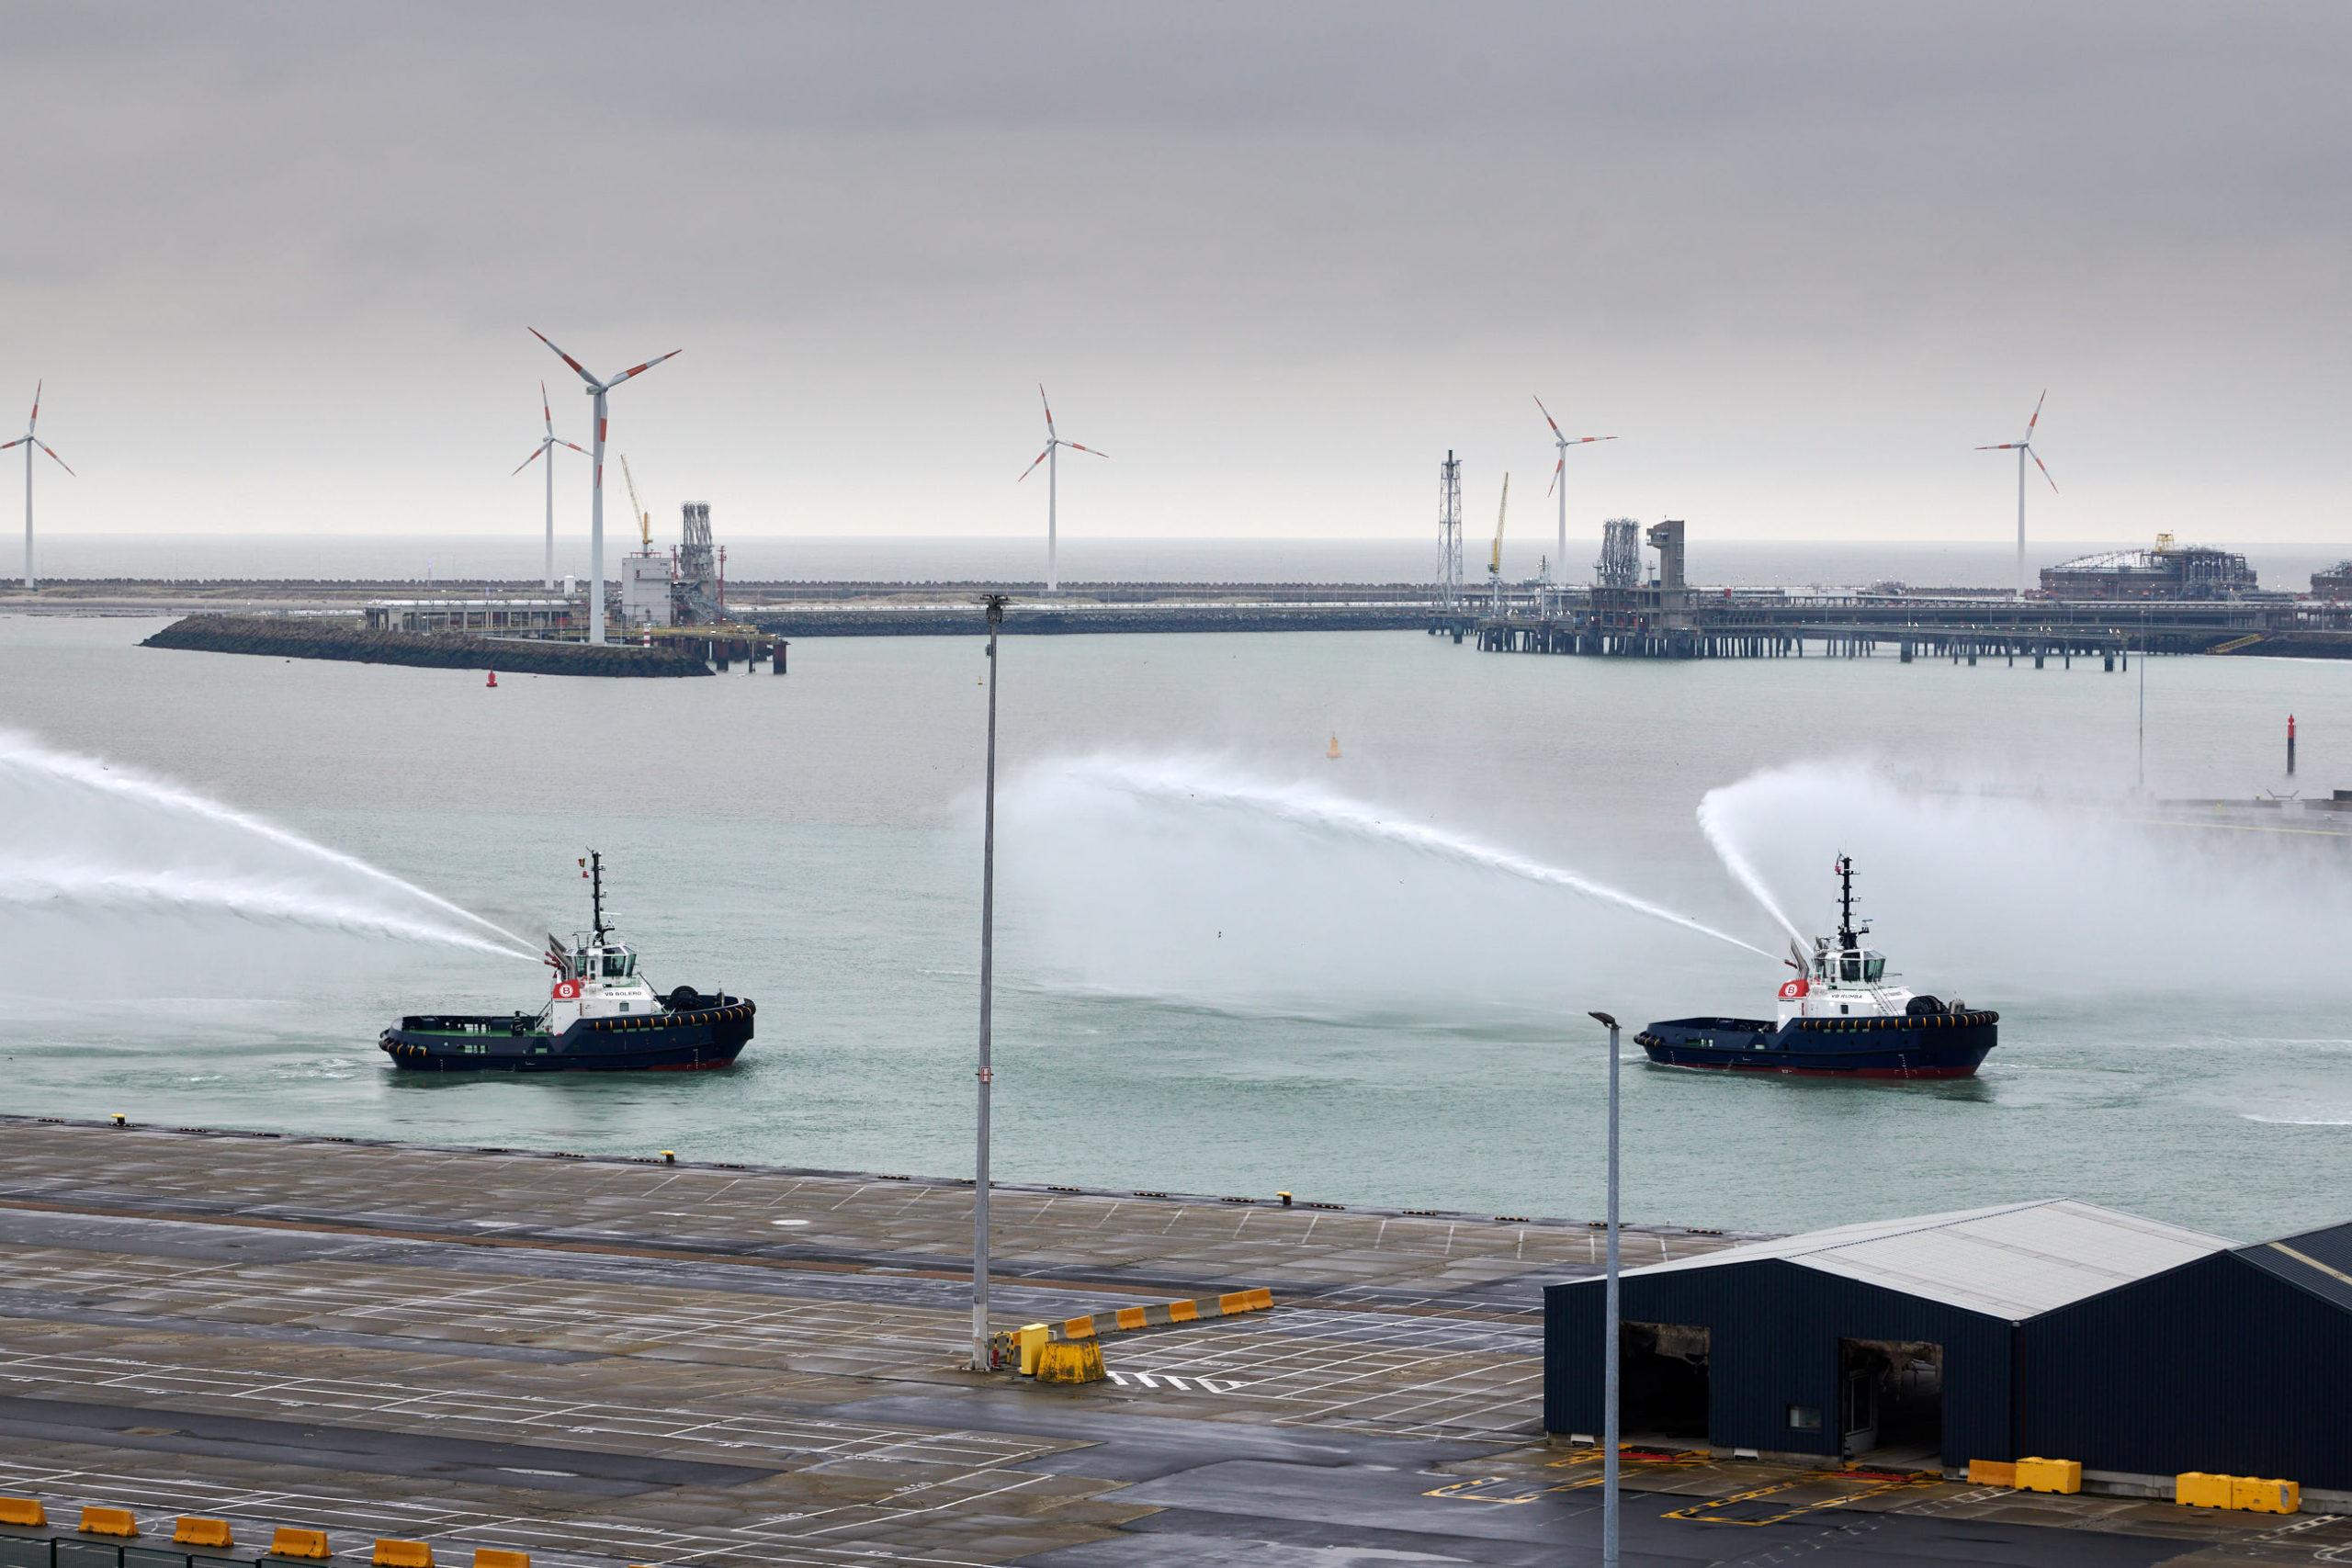 Damen delivers two new tugboats to Zeebrugge